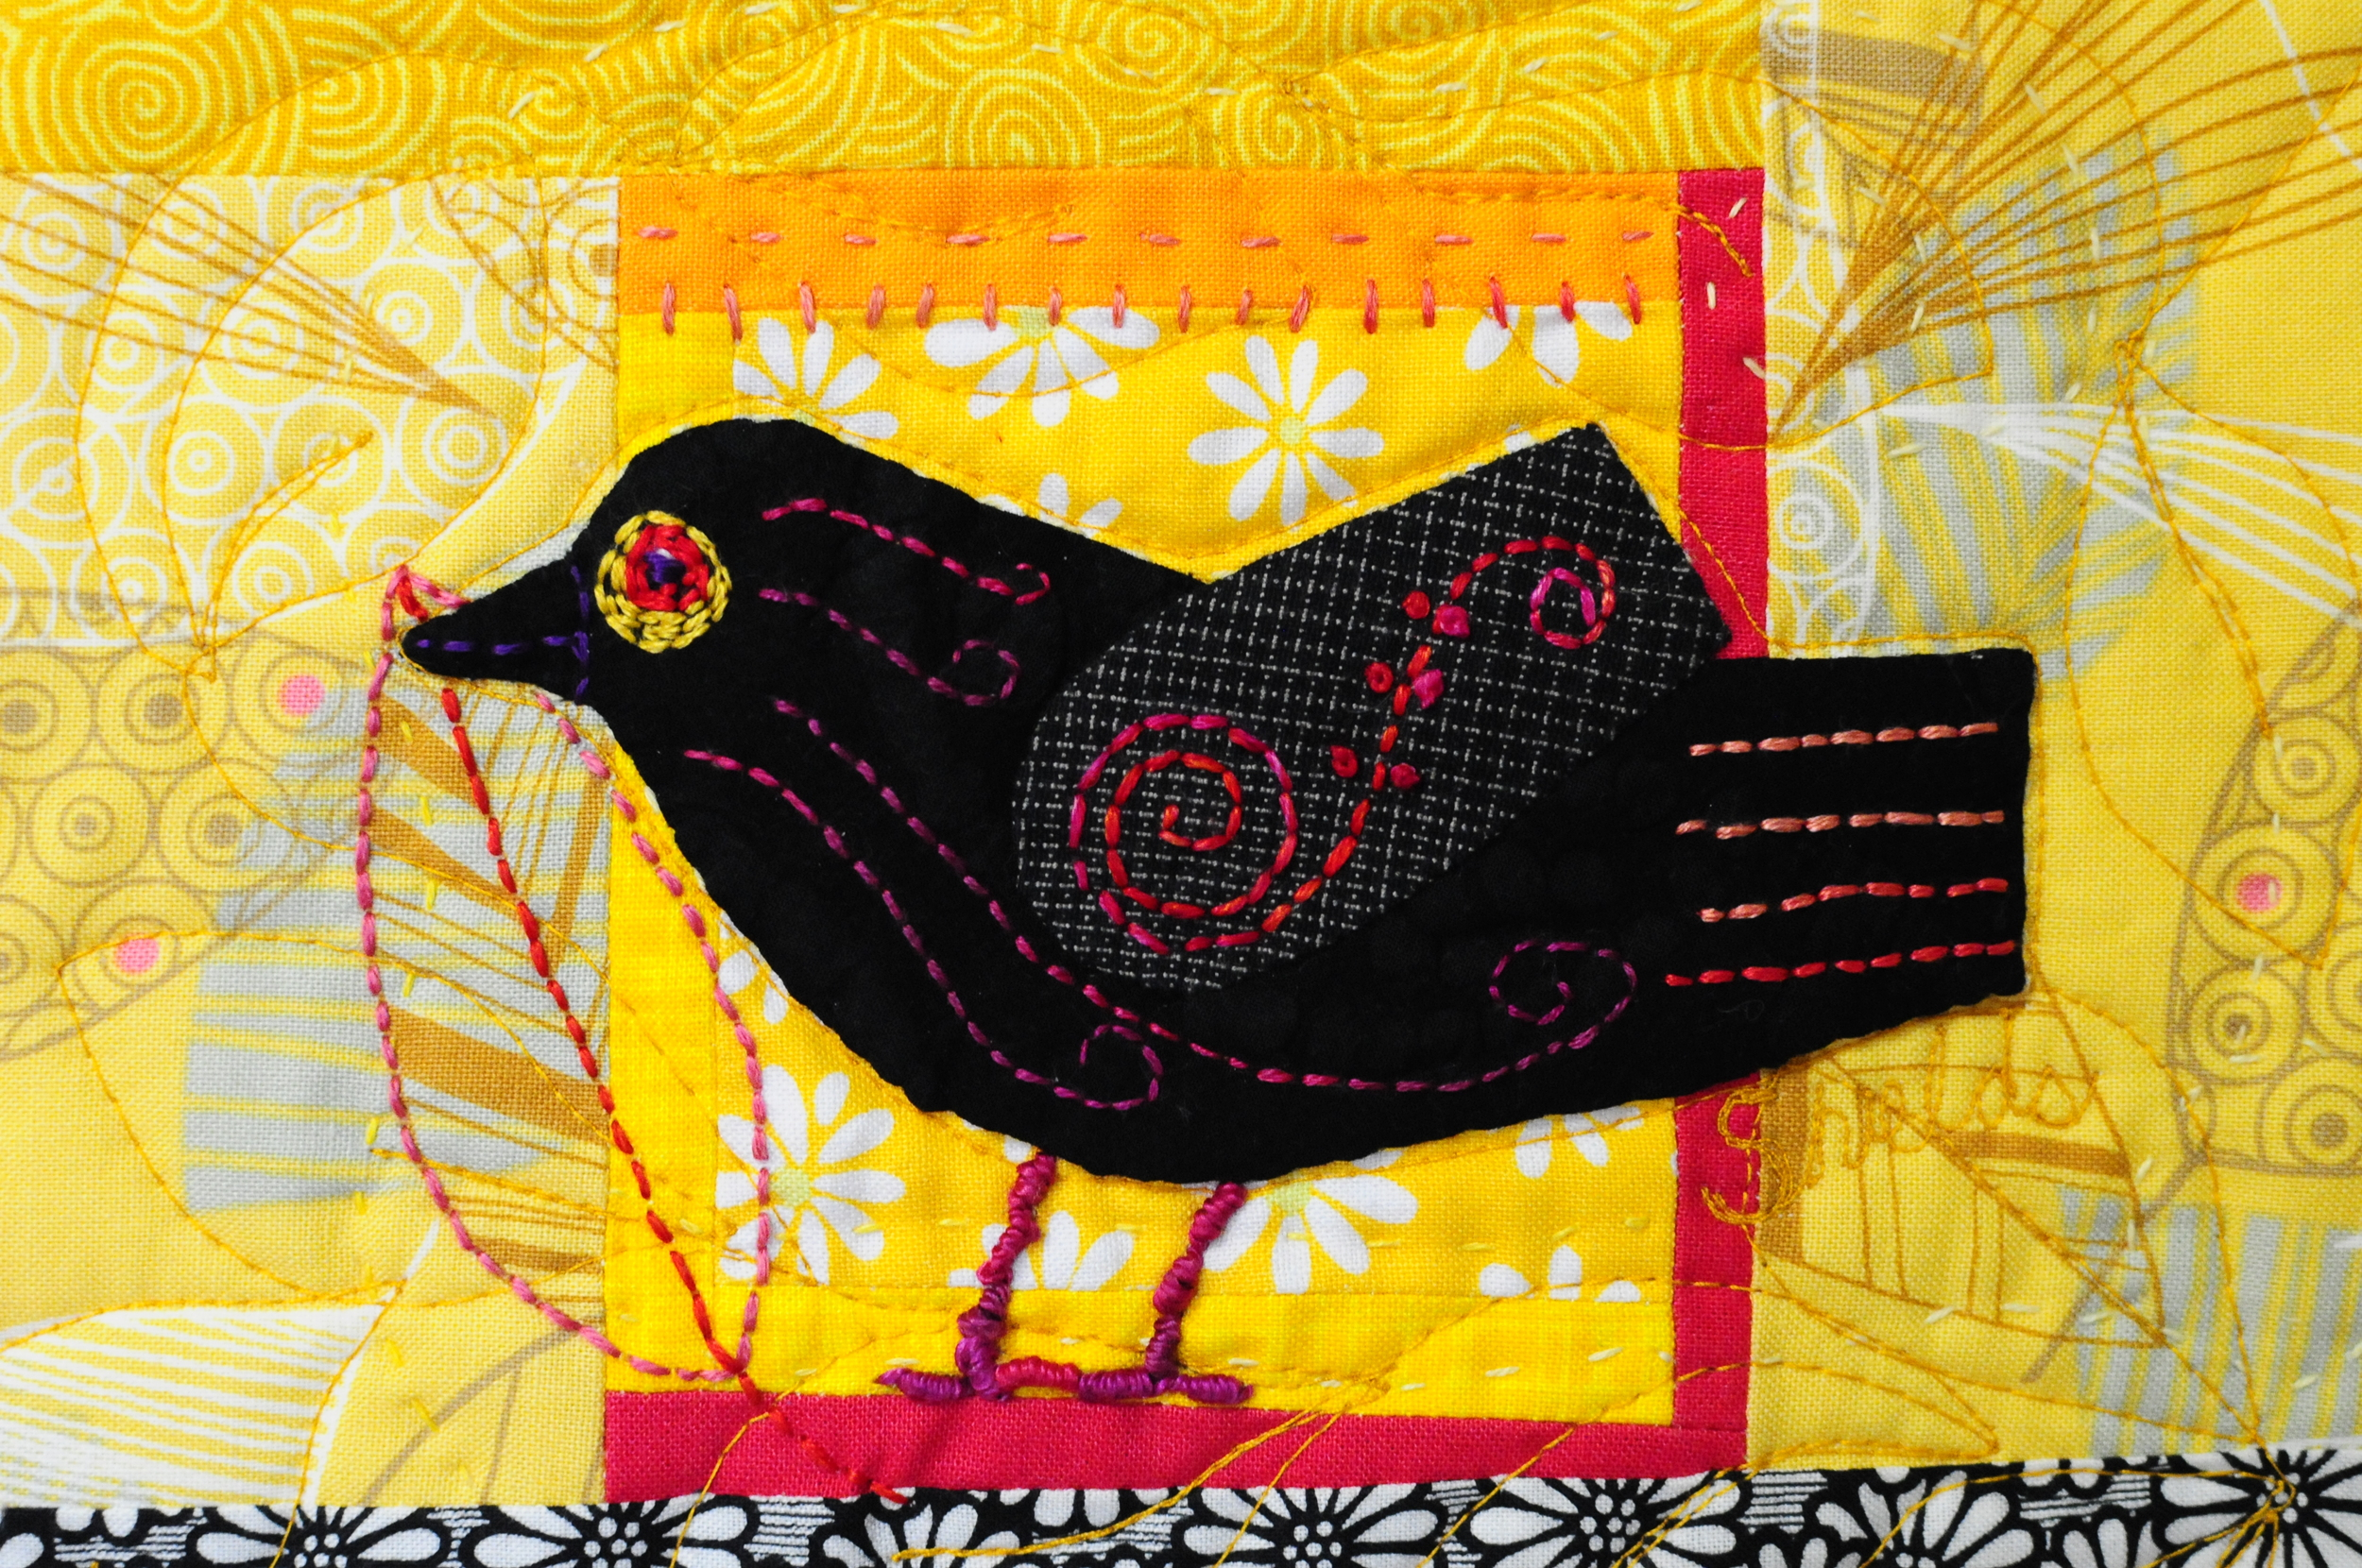 Fanciful Blackbird by mefor the Spotlight Auction